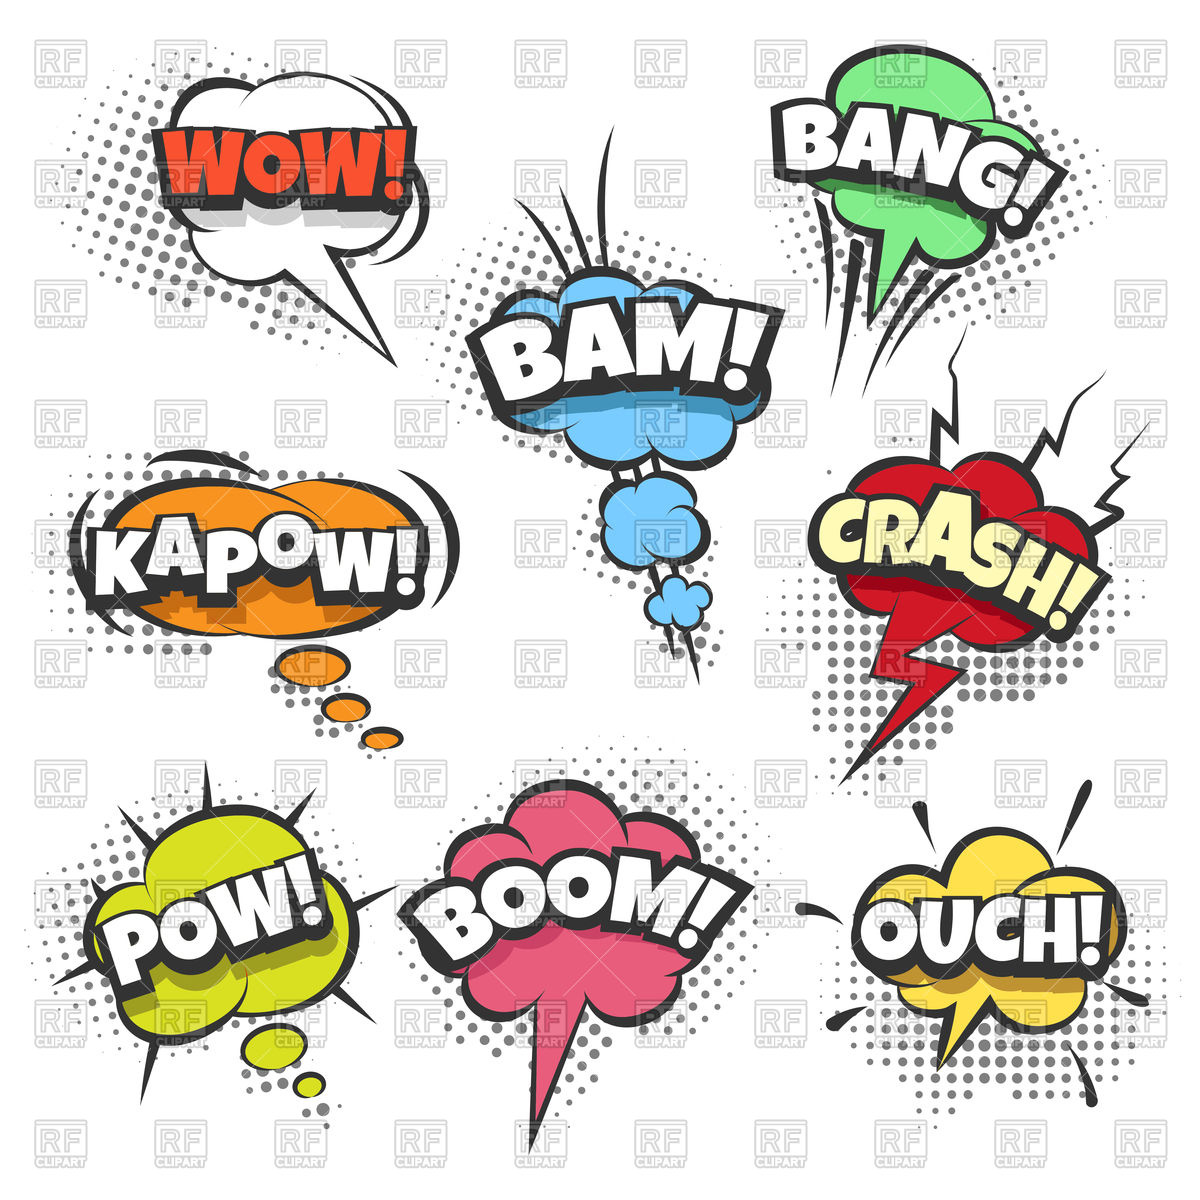 Comic sound effects text in sound bubbles Stock Vector Image.